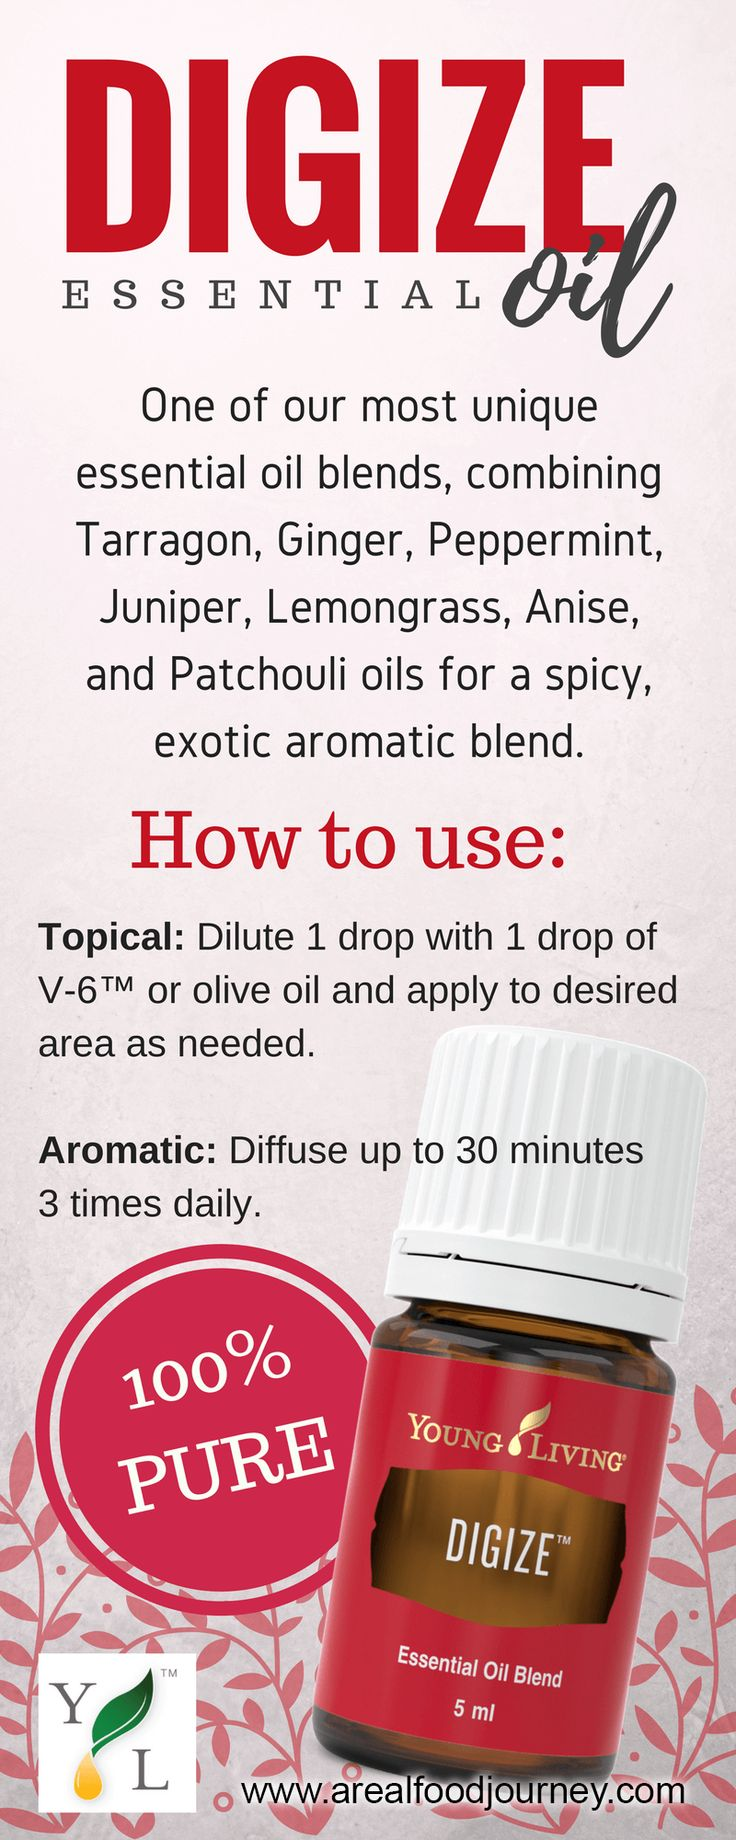 DiGize essential oil digestion support calming aroma